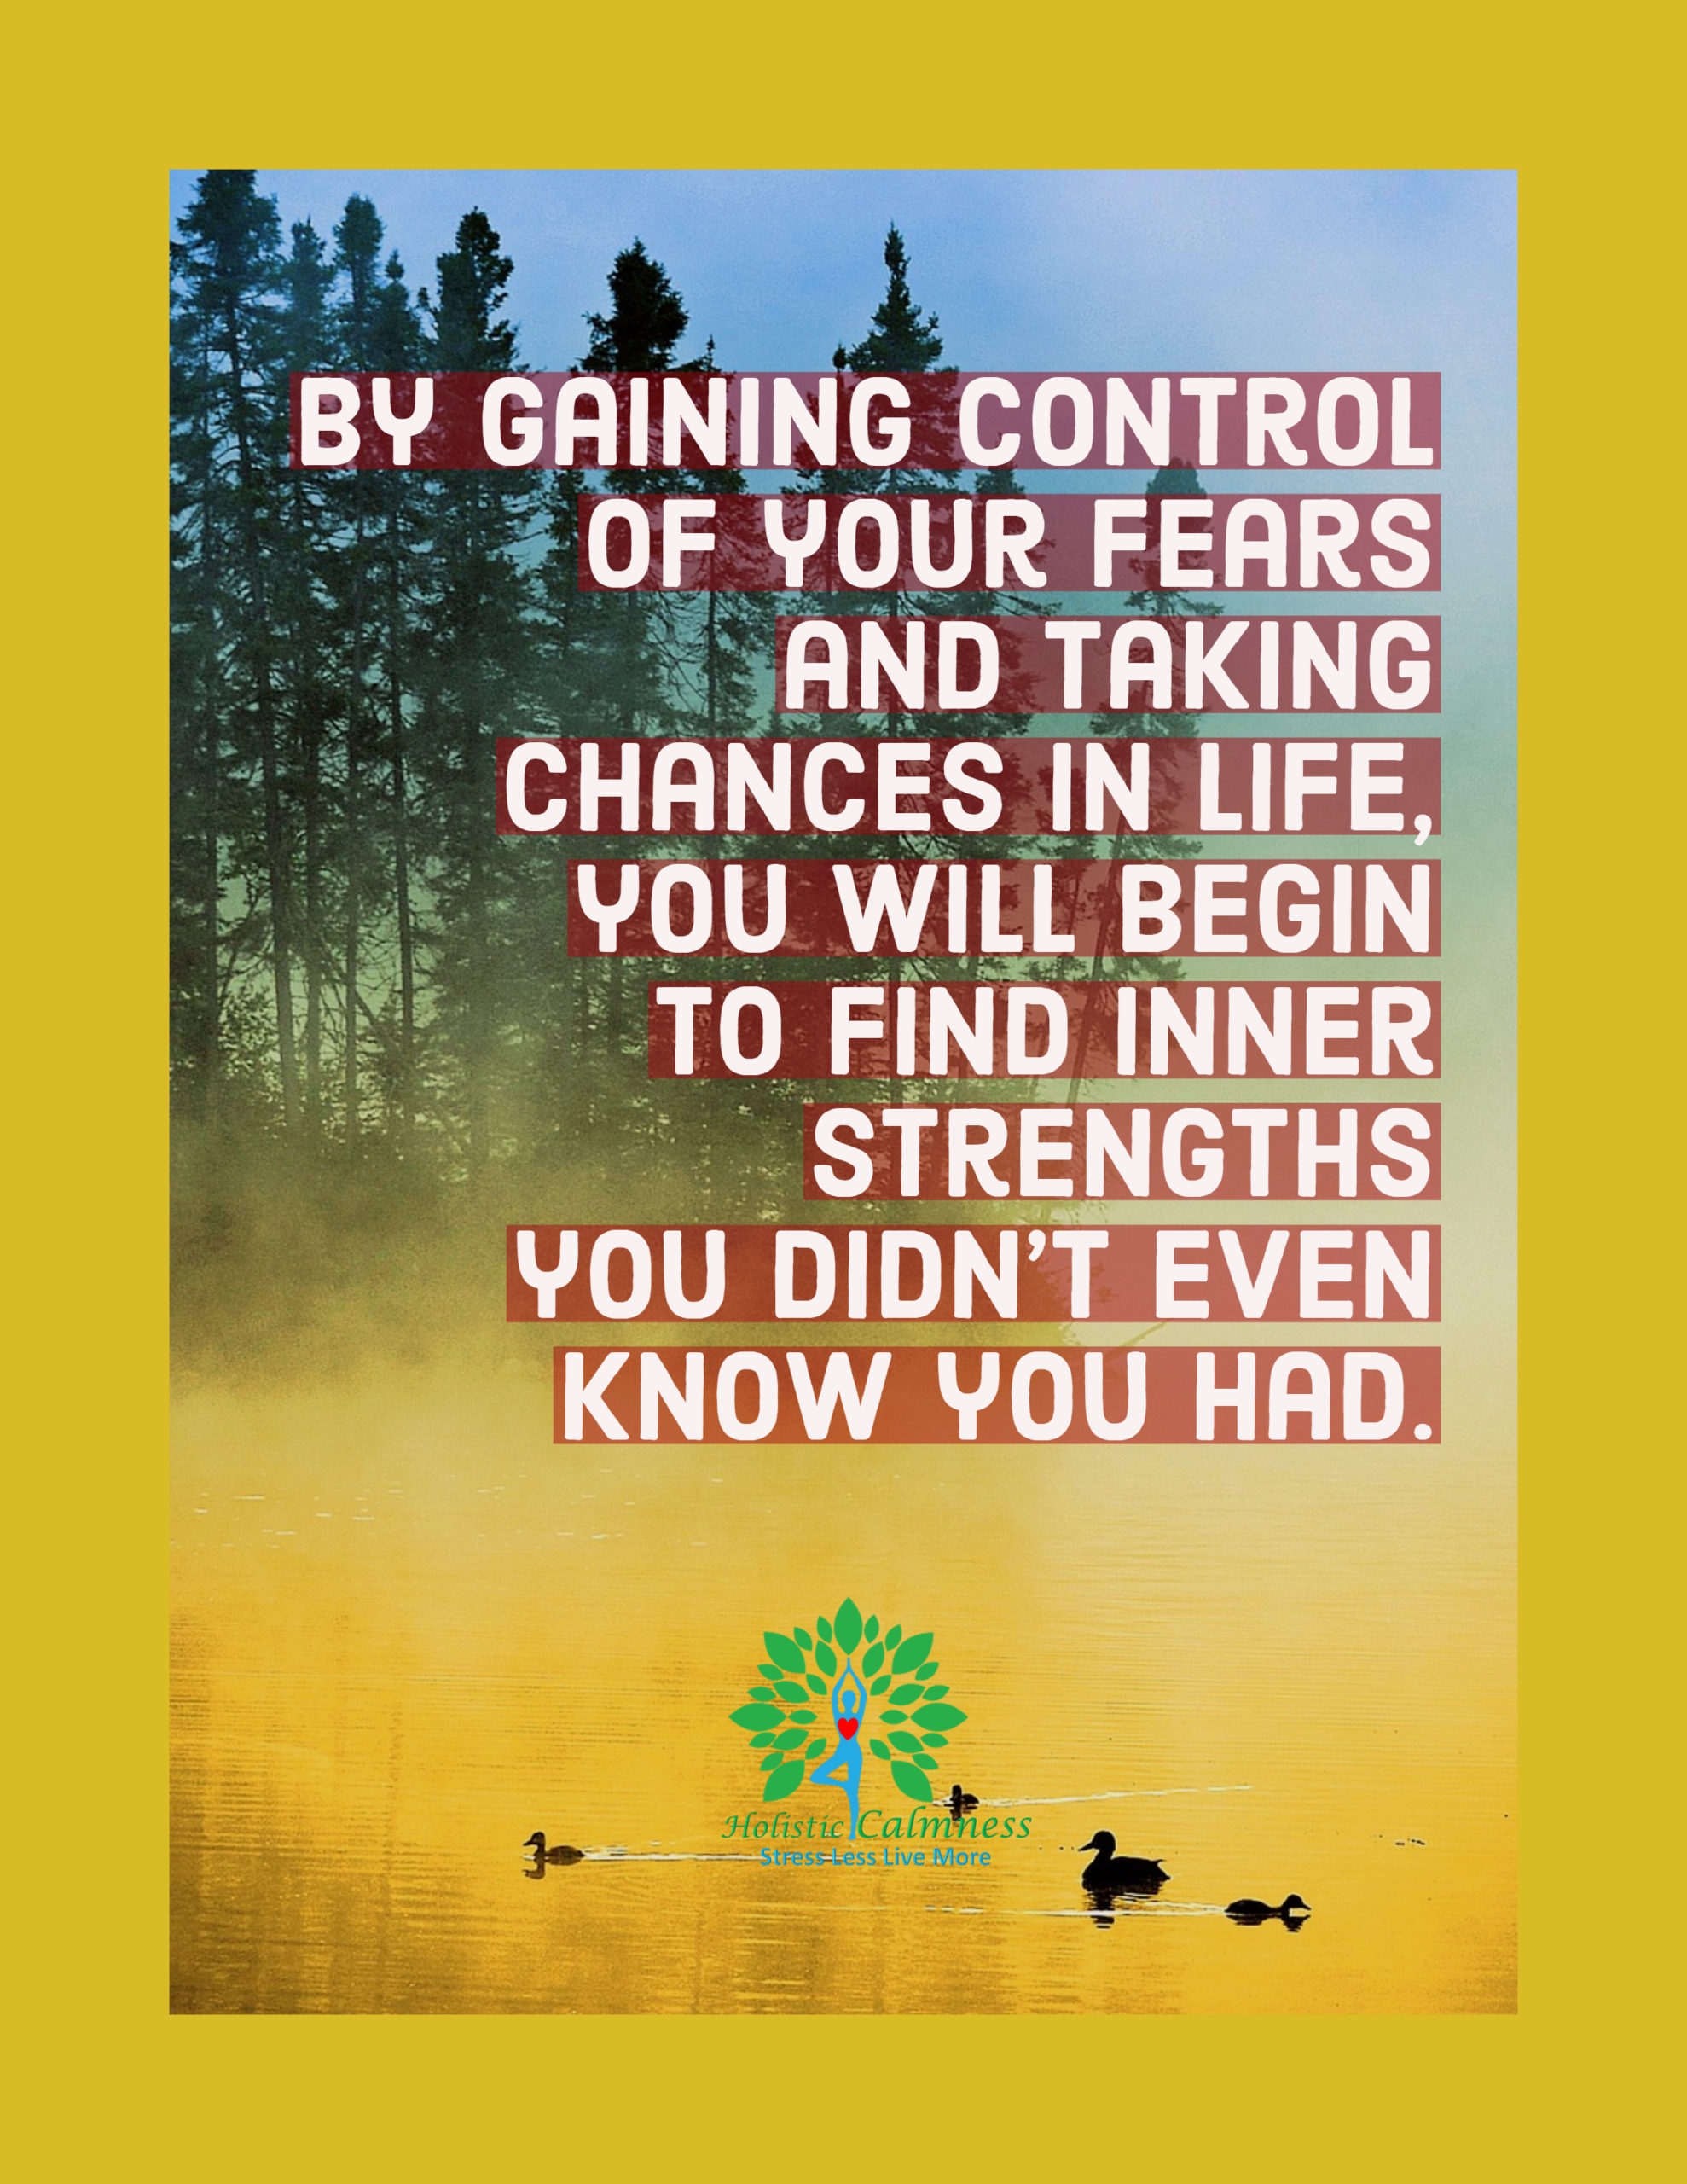 By gaining control of your fears and taking chances in life, you will begin to find inner strengths you didn't even know you had